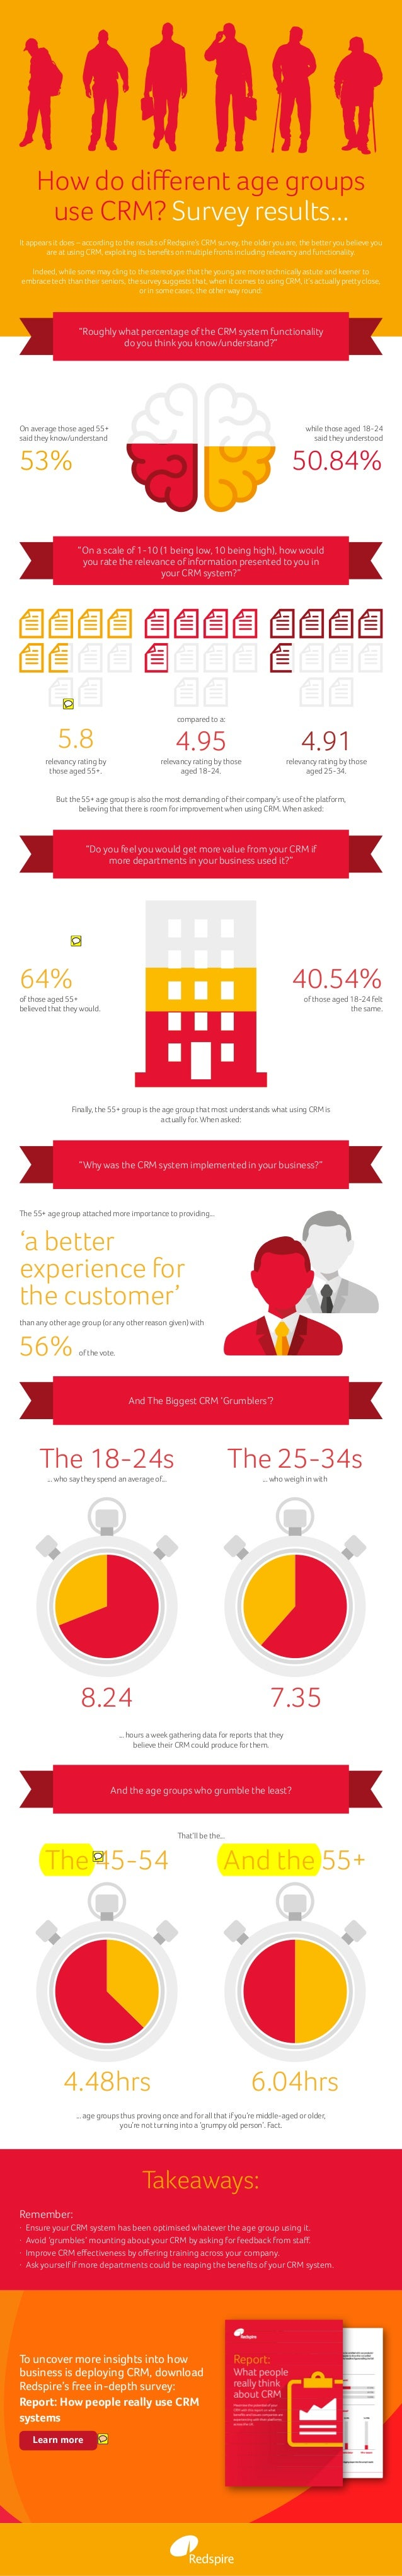 "How do different age groups use CRM? Survey results... ""Roughly what percentage of the CRM system functionality do you thi..."